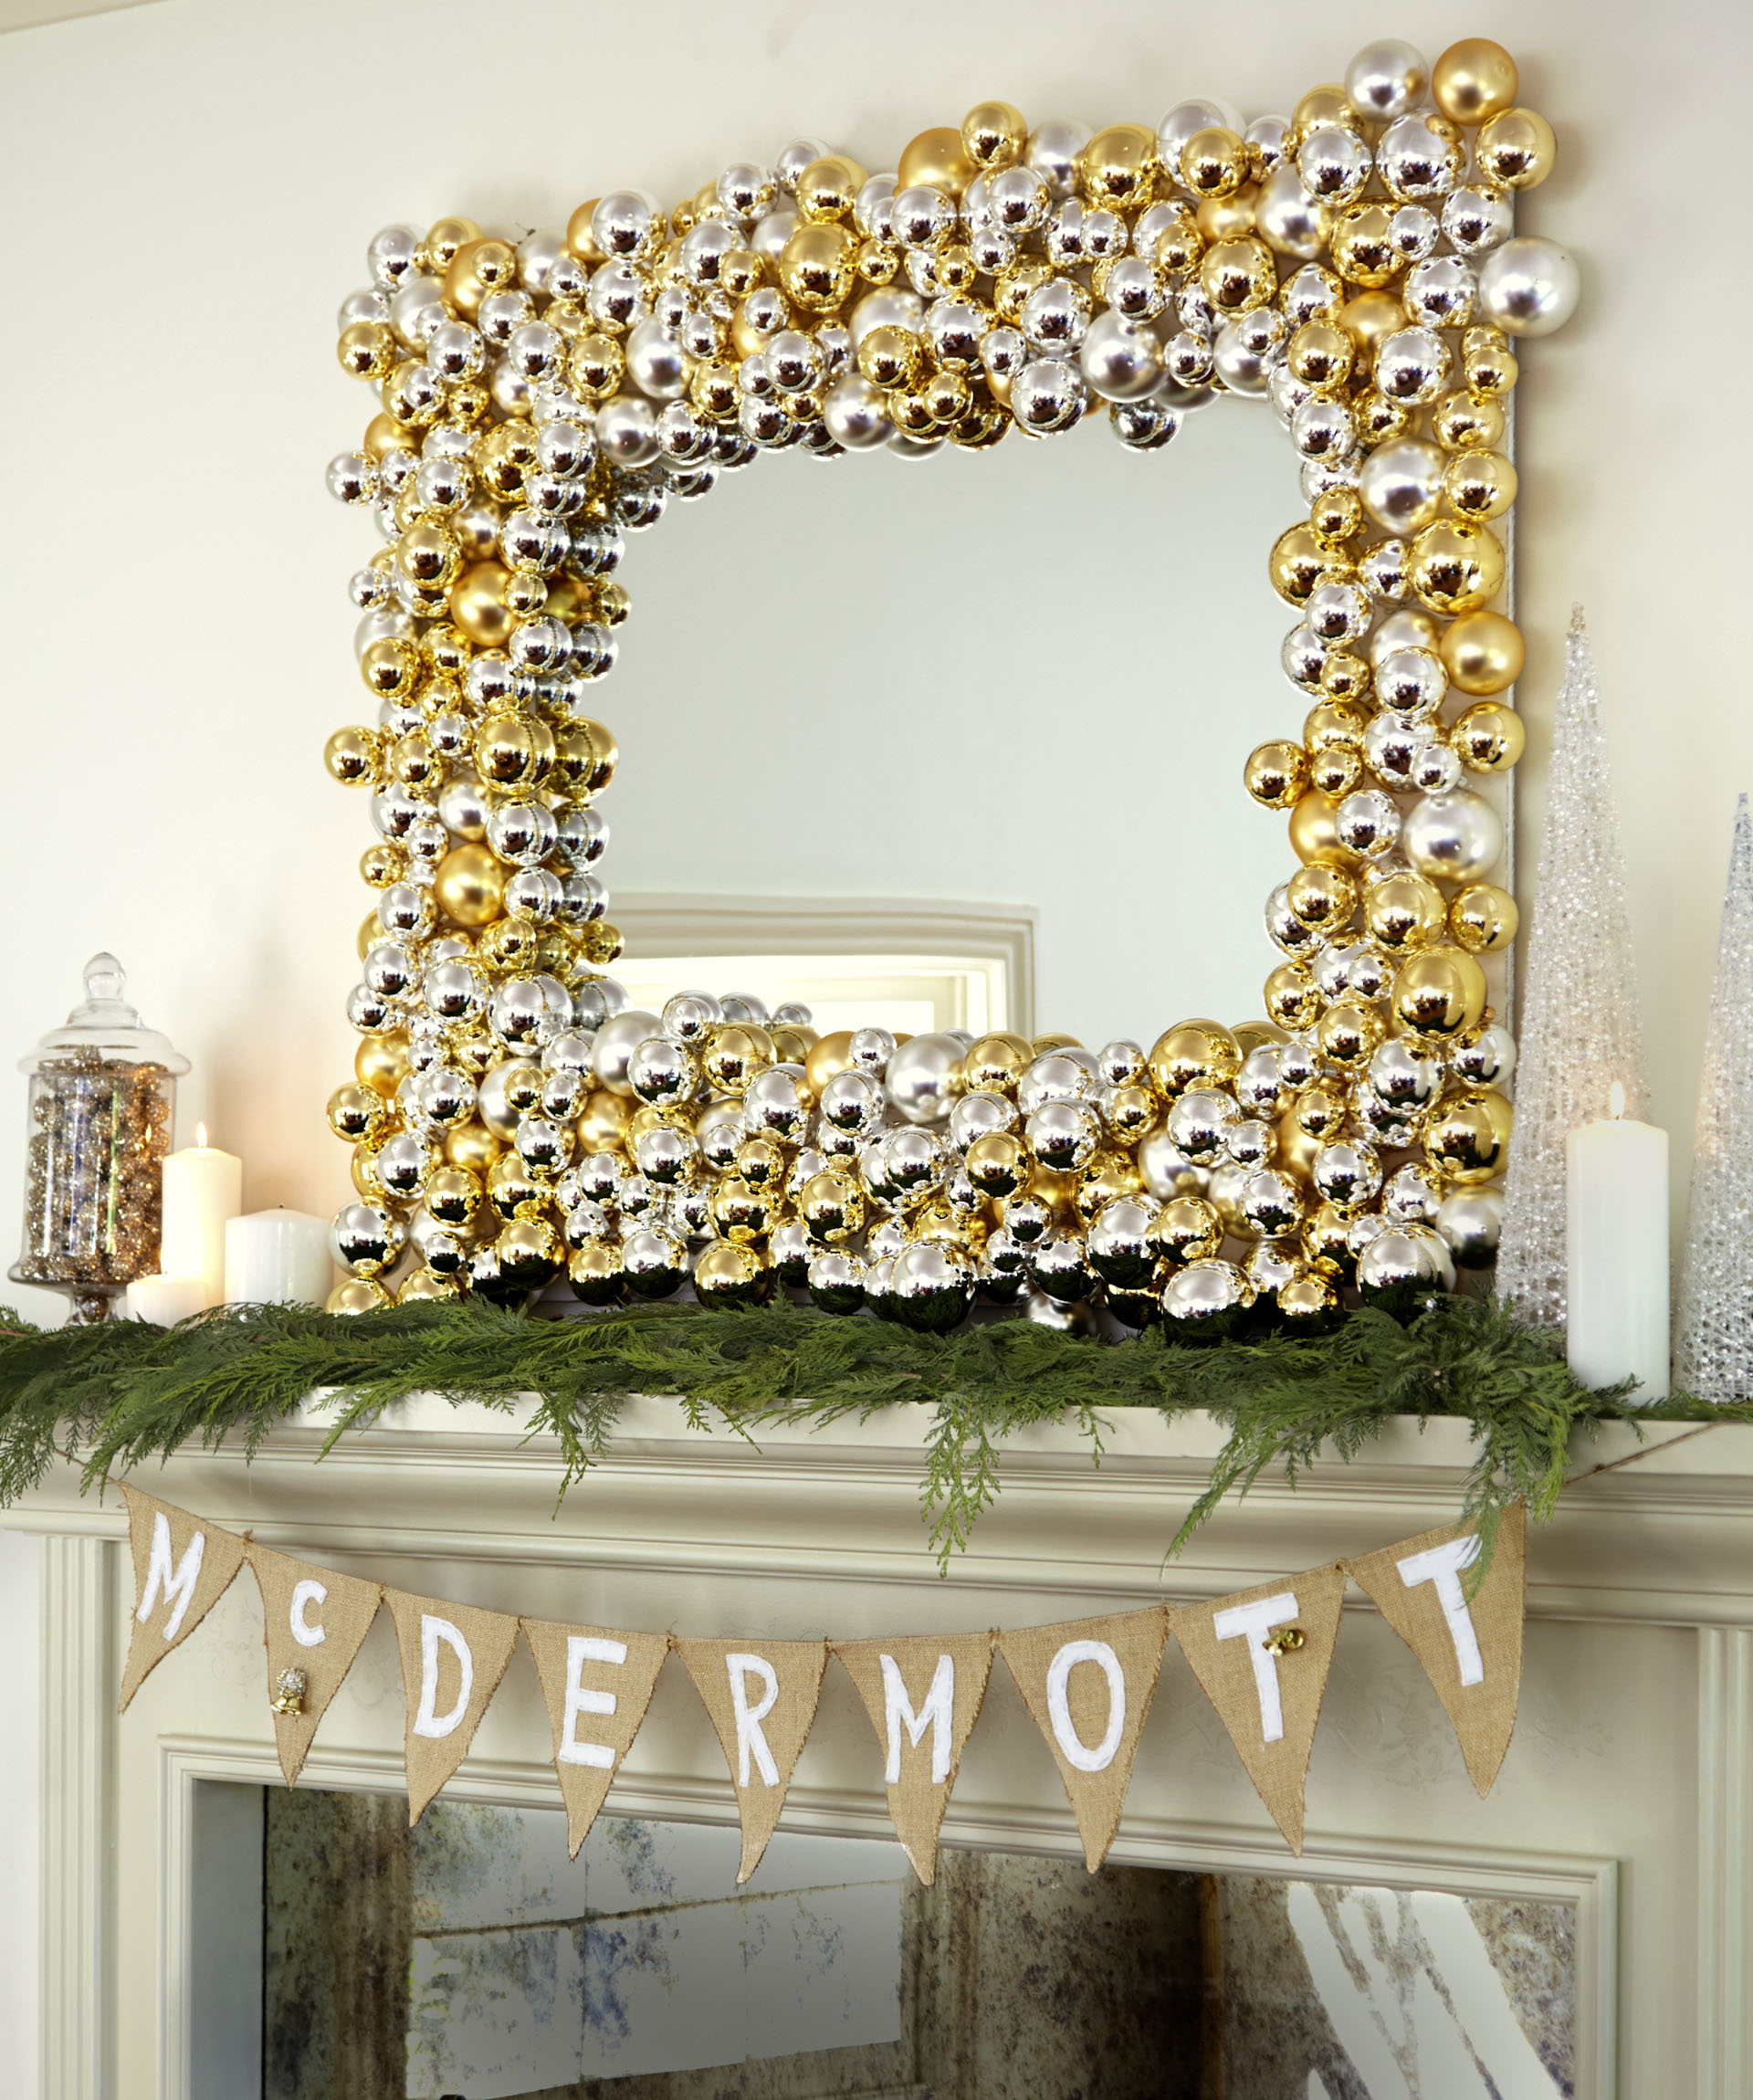 Holiday Decor Ideas Christmas: DIY Holiday Decor Ideas From Tori Spelling